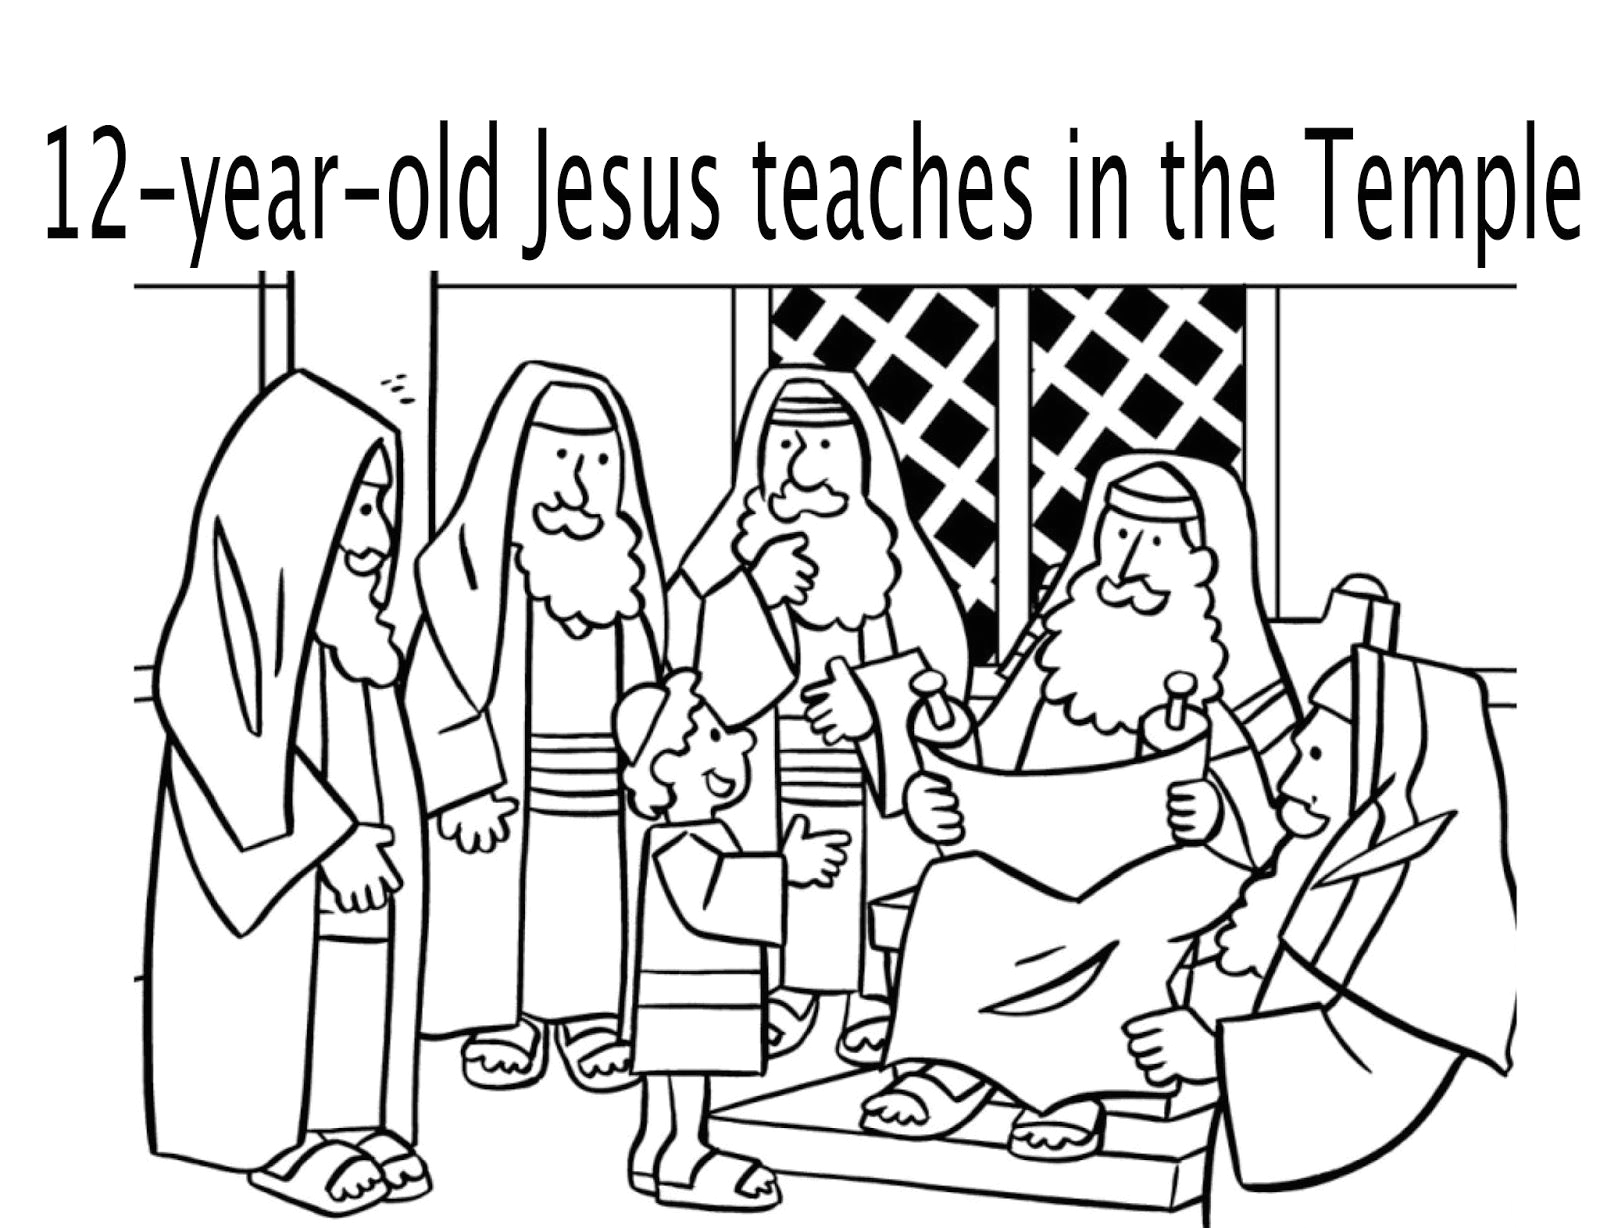 12 Year Old Jesus In the Temple Coloring Page Boy Jesus Teaching In the Temple 12 Years Old Coloring